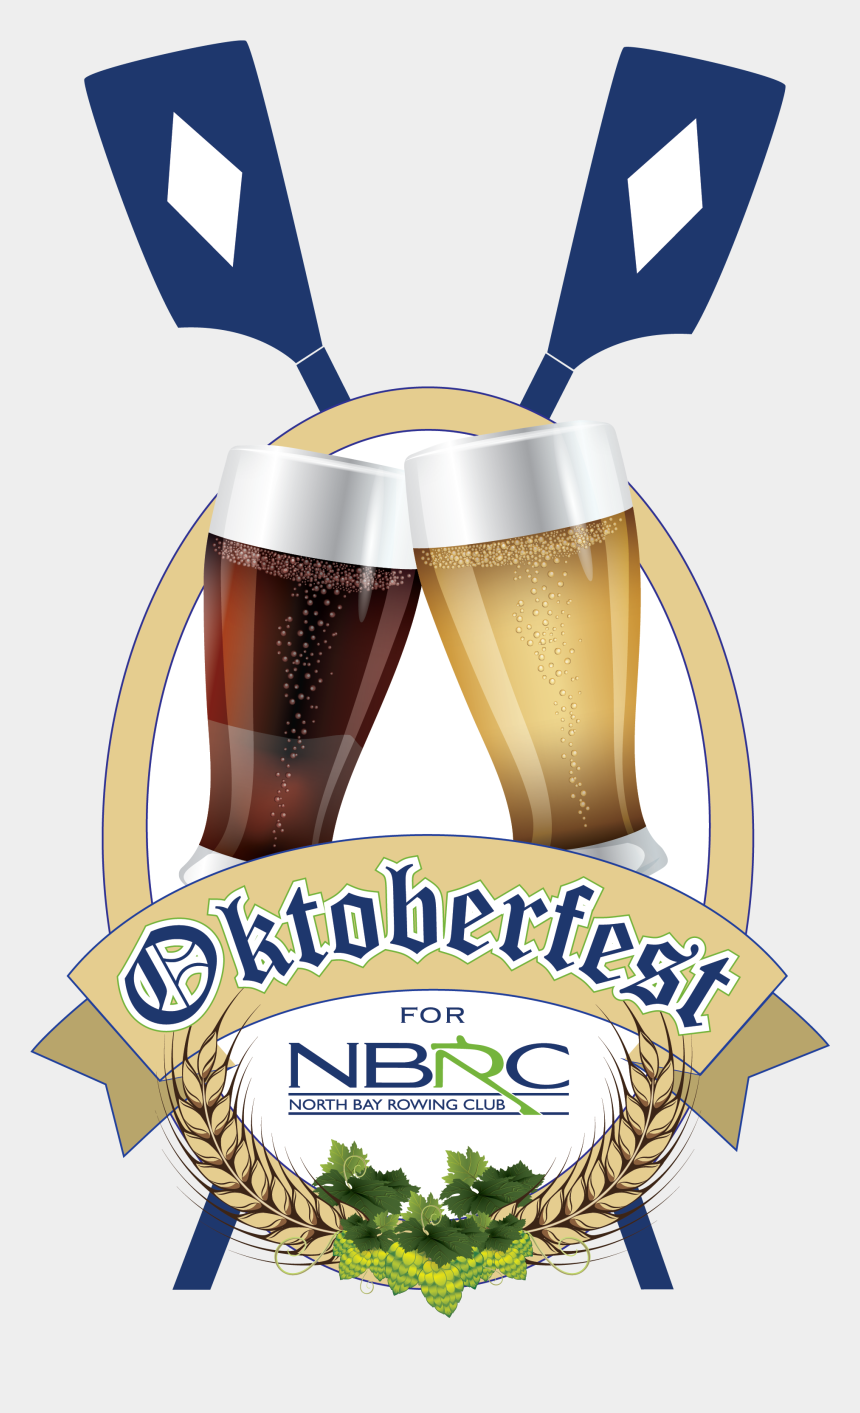 beer mug clipart, Cartoons - In January An Nbrc Fundraiser North Bay Ⓒ - Oktoberfest